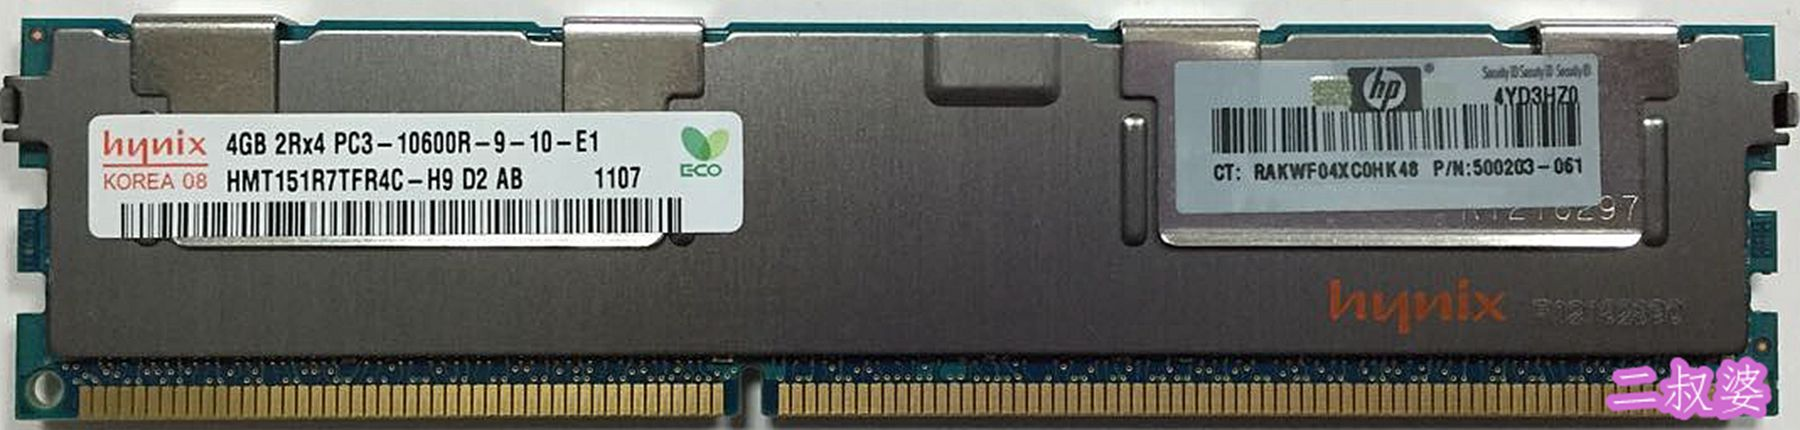 Оперативная память Hynix HY DDR3 4GB 2RX4 PC3-10600R 4gb 44t1586 vlp rdimm pc3 10600r hs22 hs22v server memory one year warranty